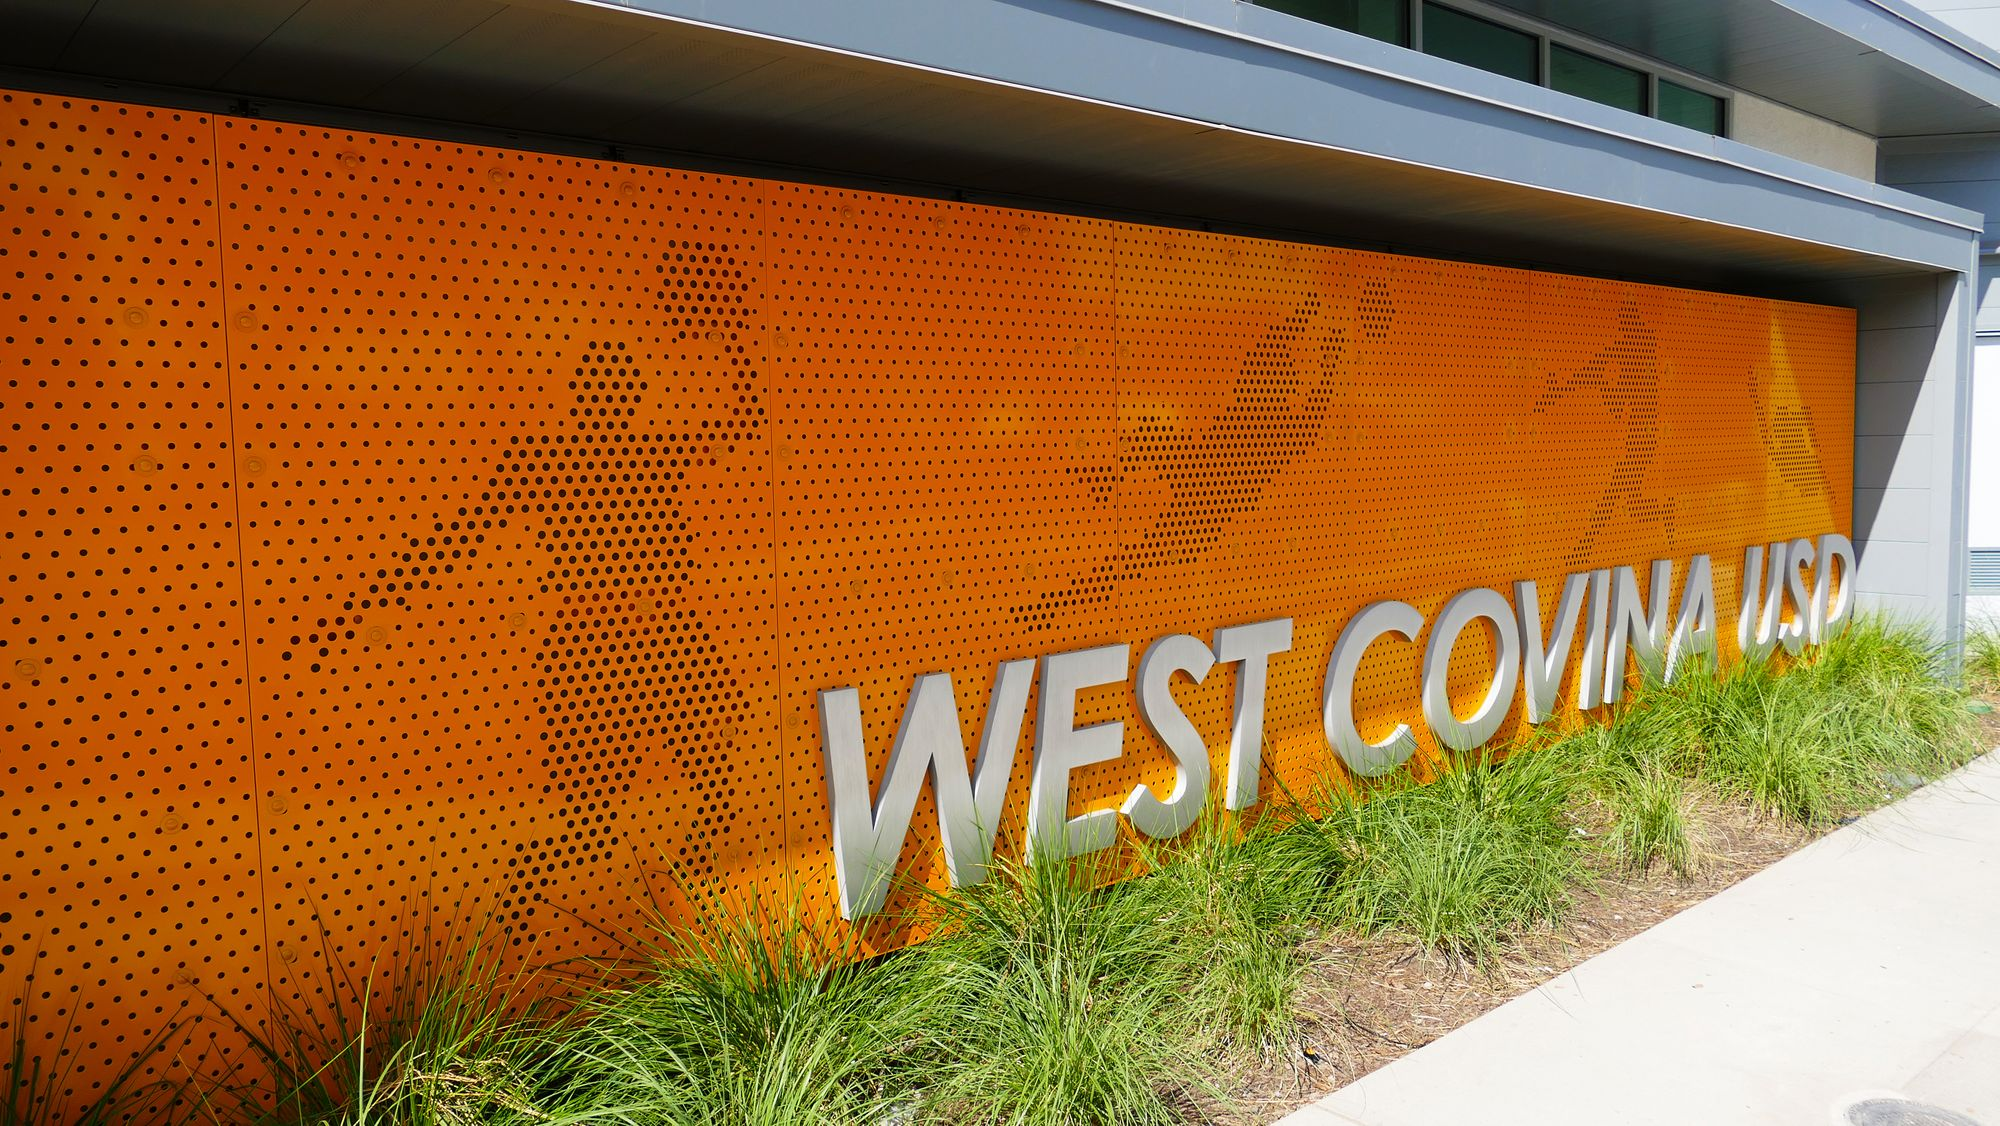 Entryway featuring custom Perforated Metal panels that represent campus activities